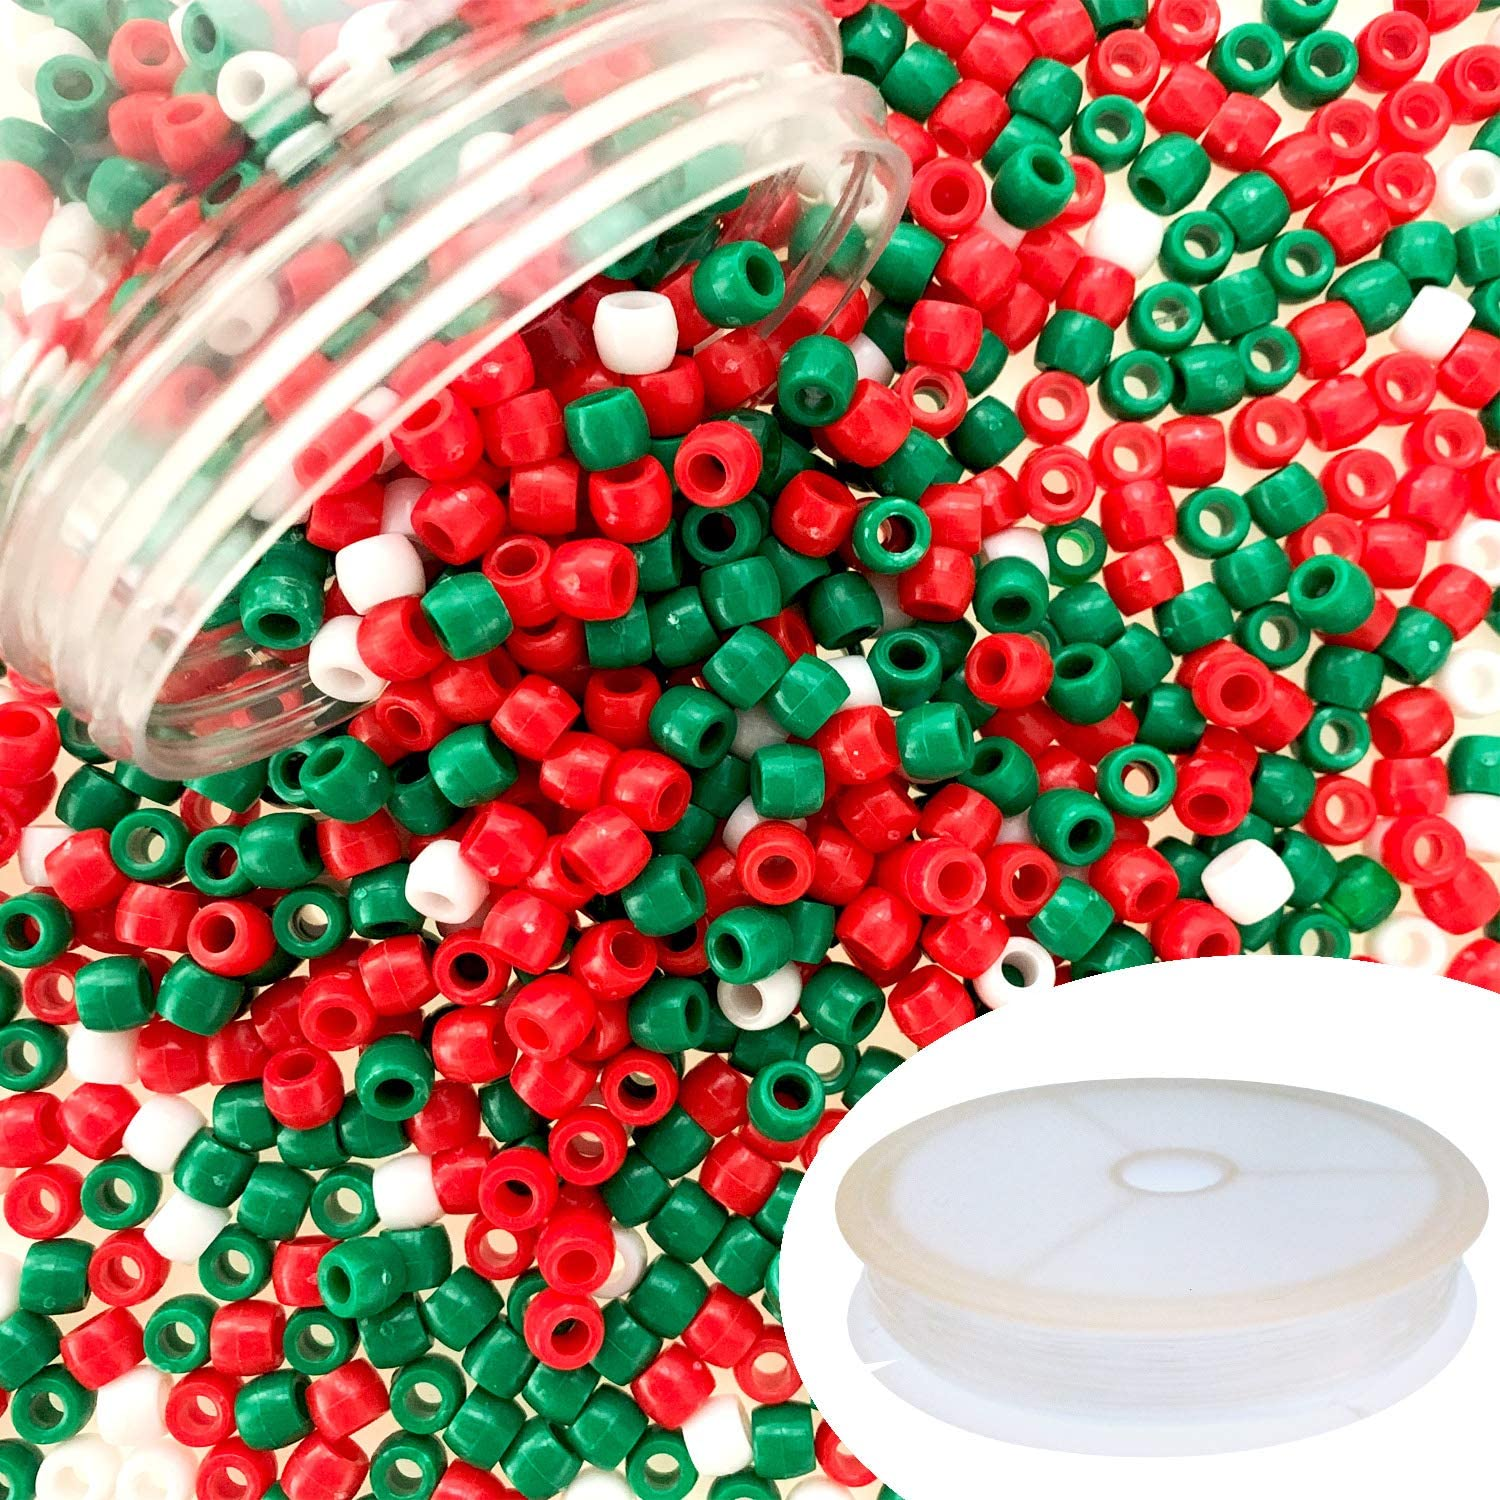 Red and Green Lixieym 1200 Pieces Christmas Pony Beads Plastic Beads Craft Beads for Christmas DIY Craft Making